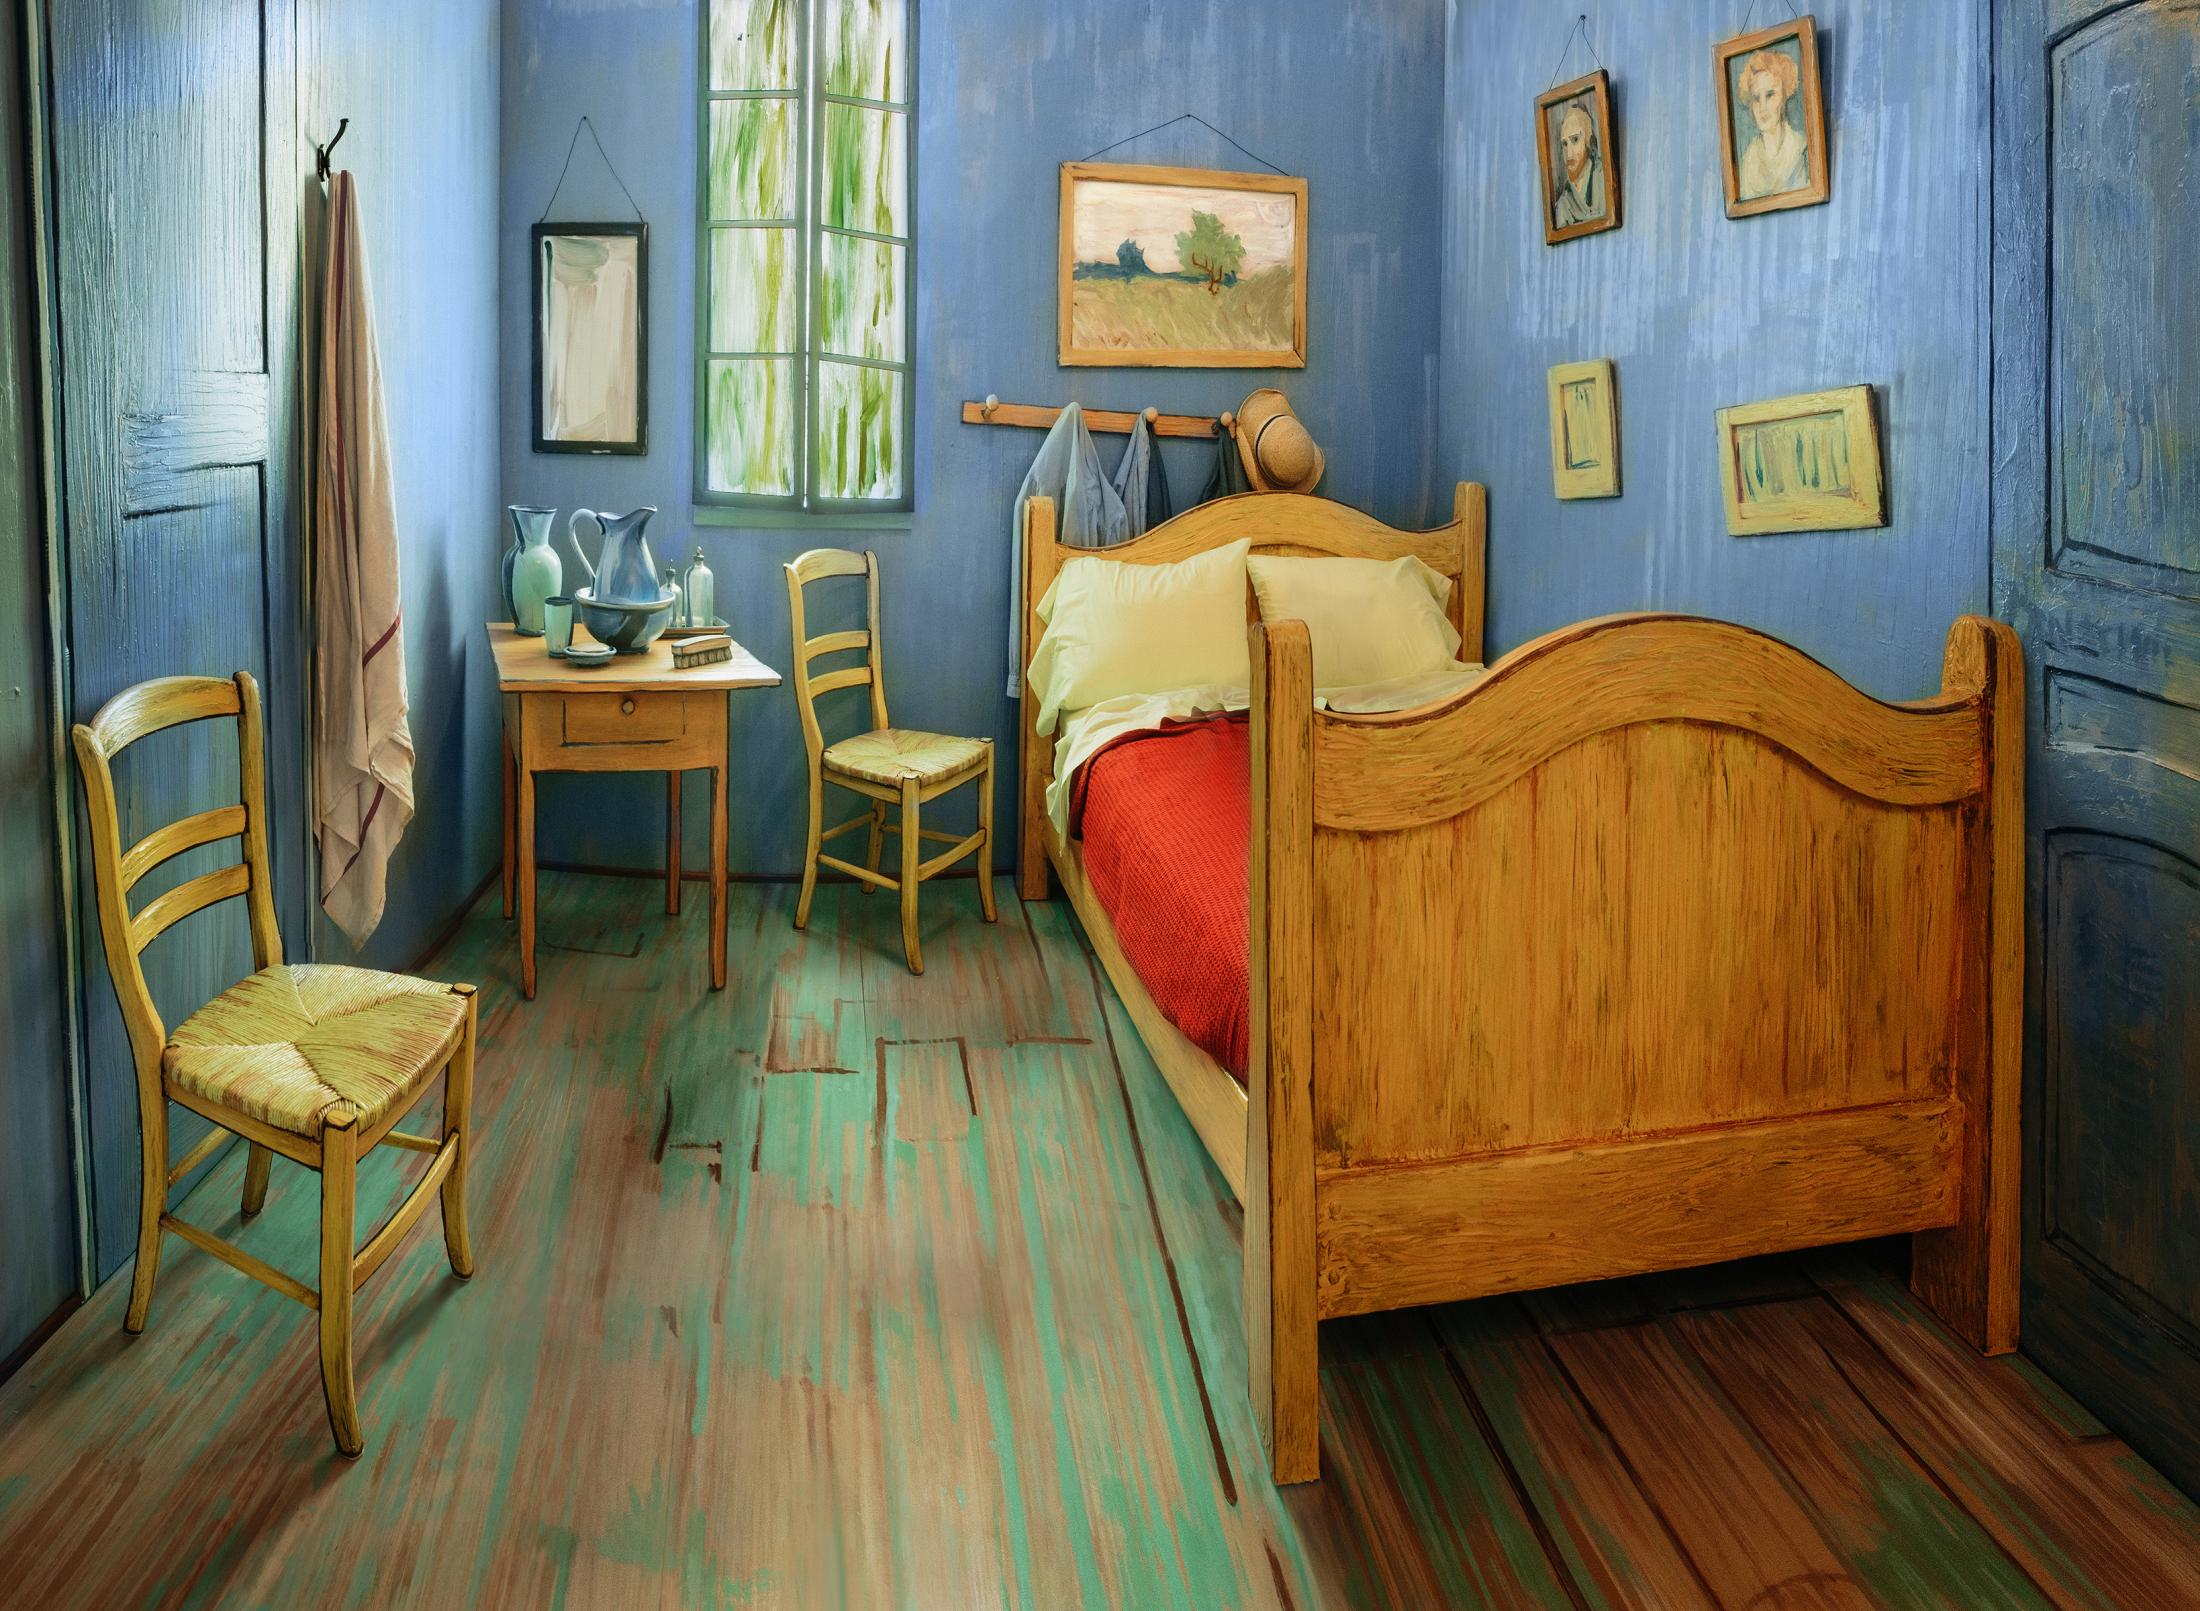 Thumbnail for Van Gogh BnB